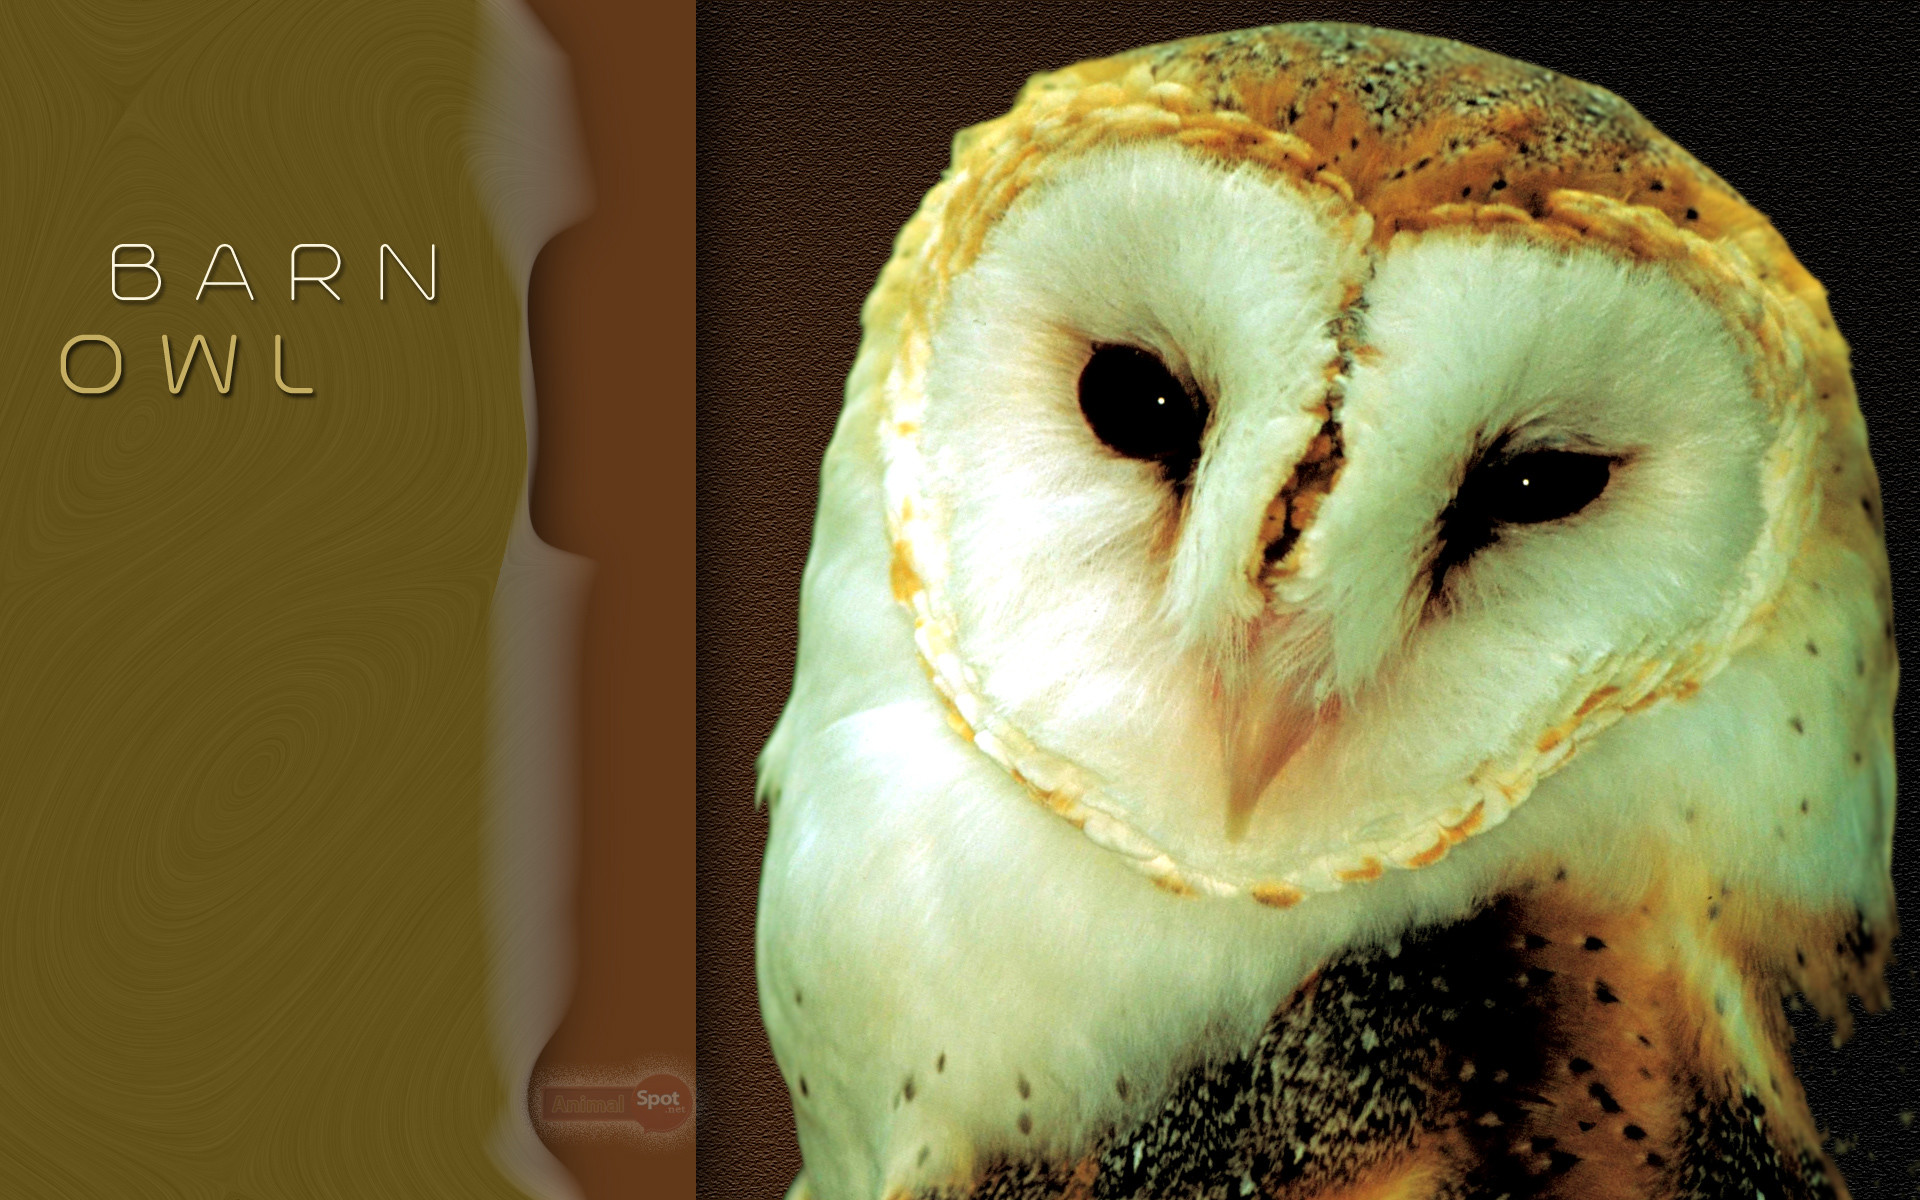 Best Owl Wallpapers and Backgrounds. Barn Owl Wallpaper